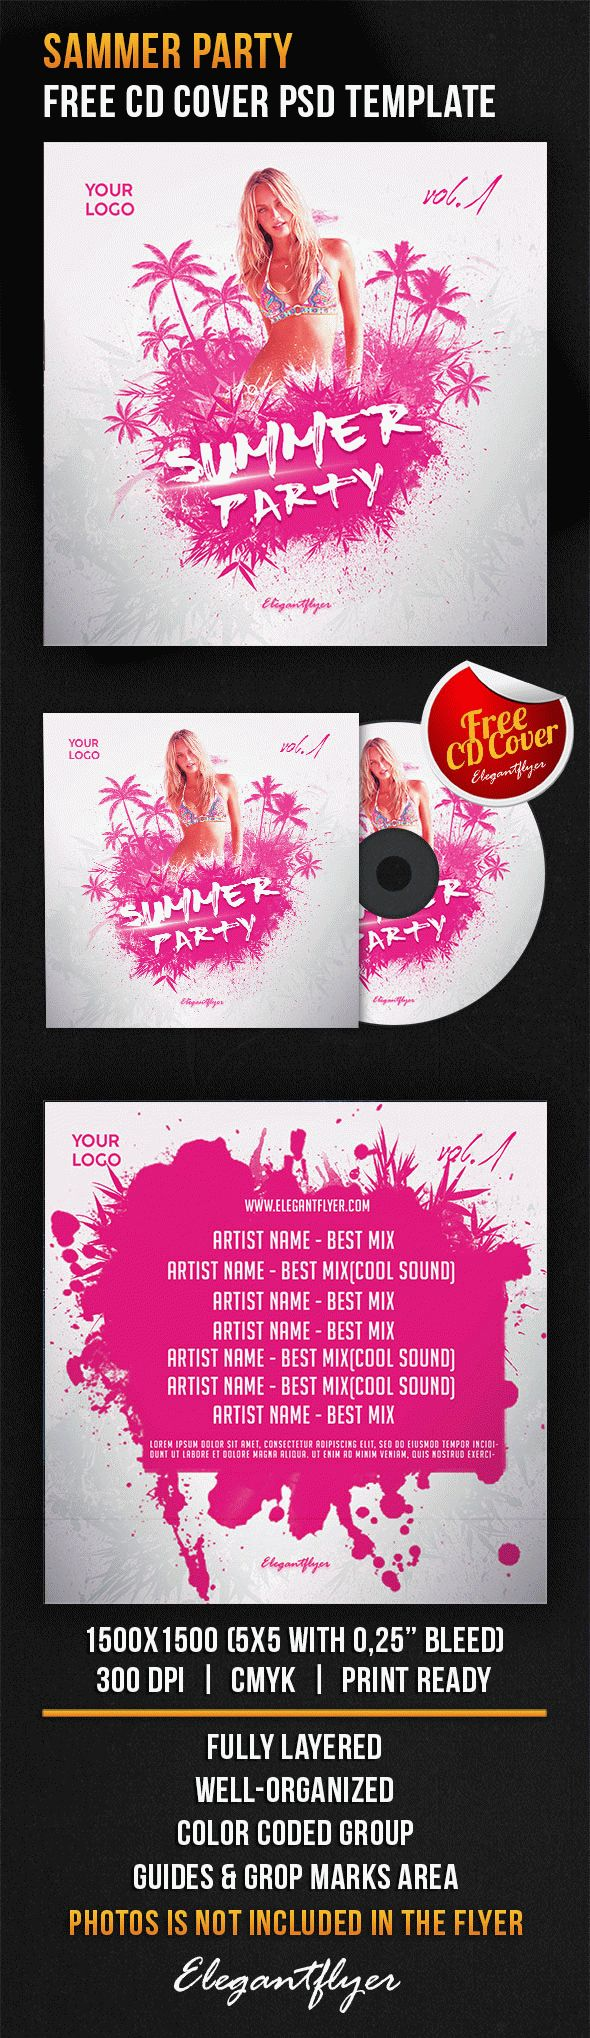 Summer Party – Free CD Cover PSD Template